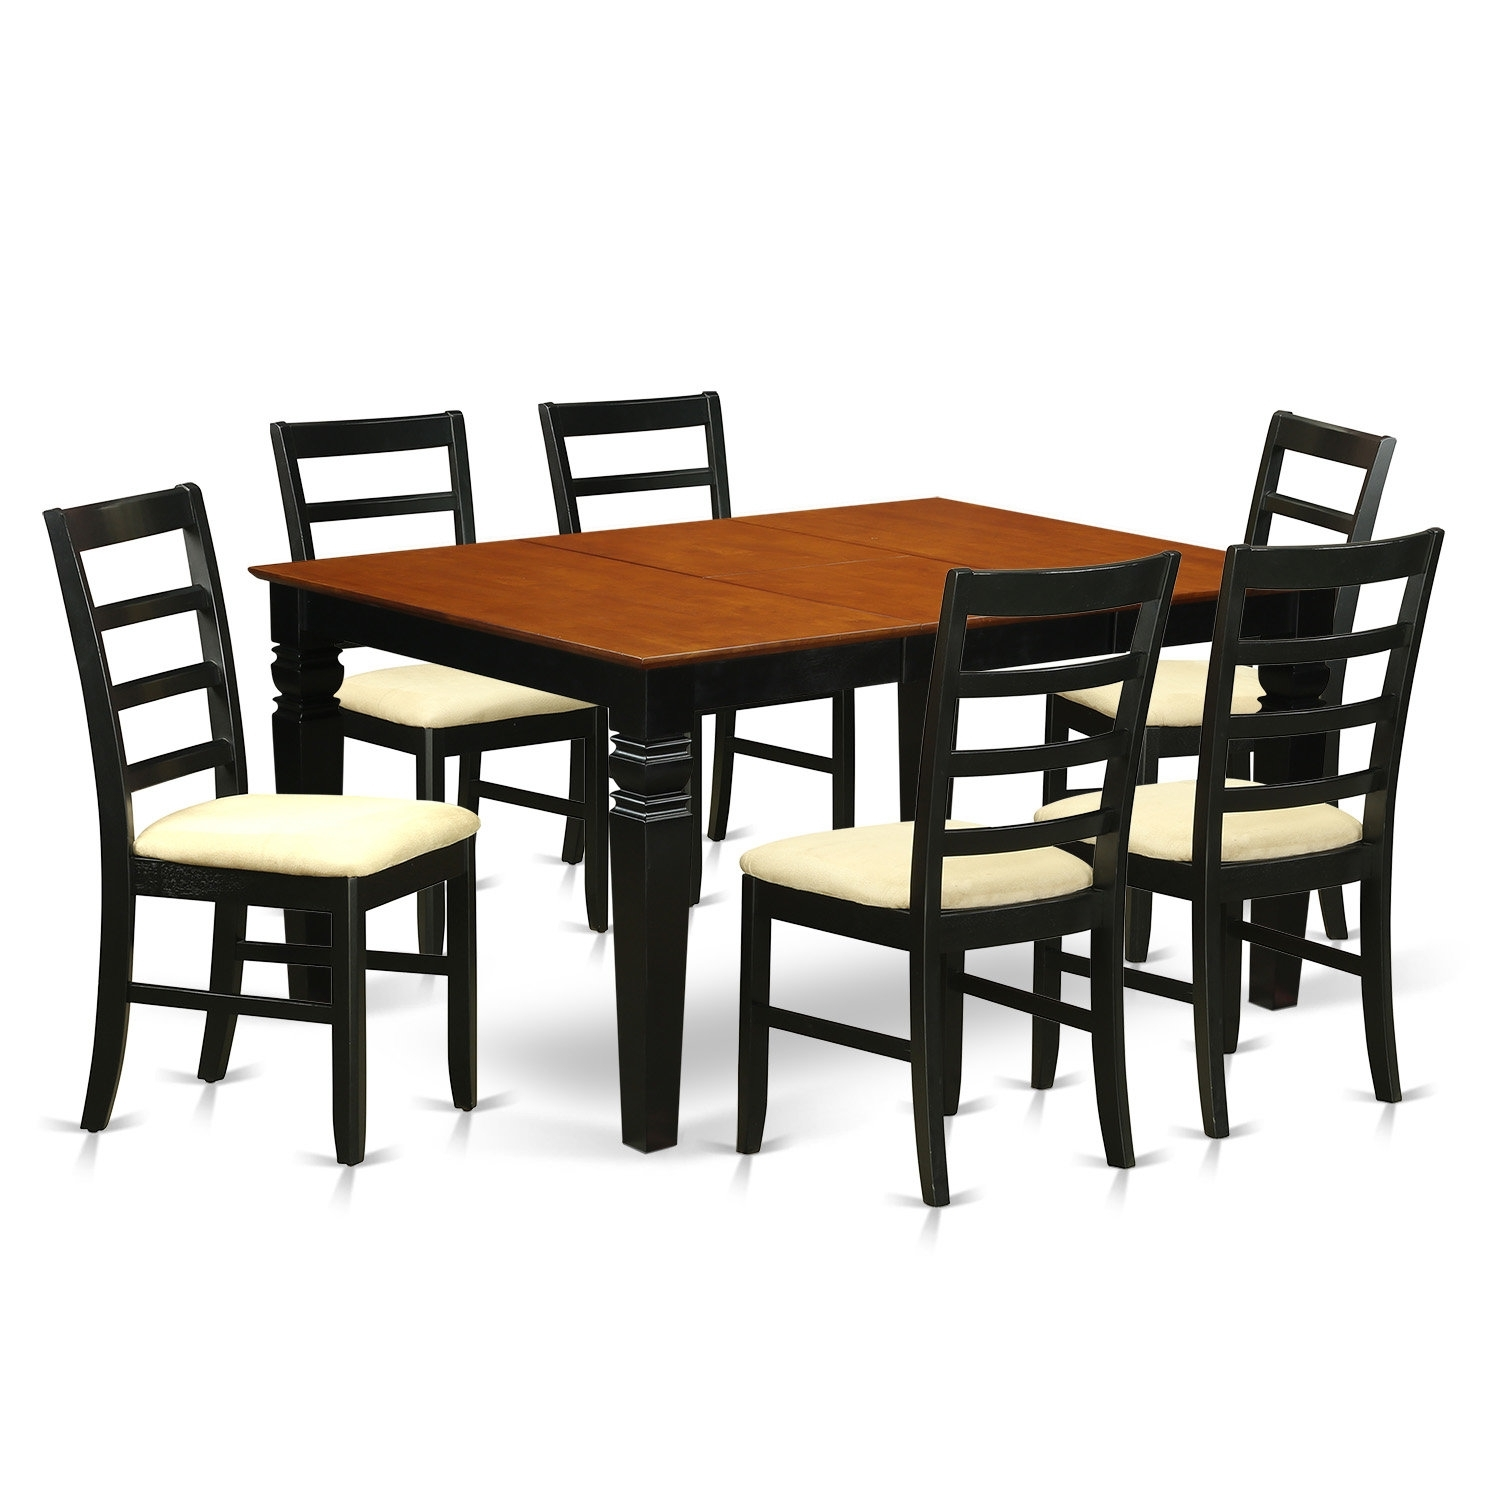 Red Barrel Studio Chandler 7 Piece Dining Set | Wayfair Regarding Latest Chandler Extension Dining Tables (Photo 13 of 20)